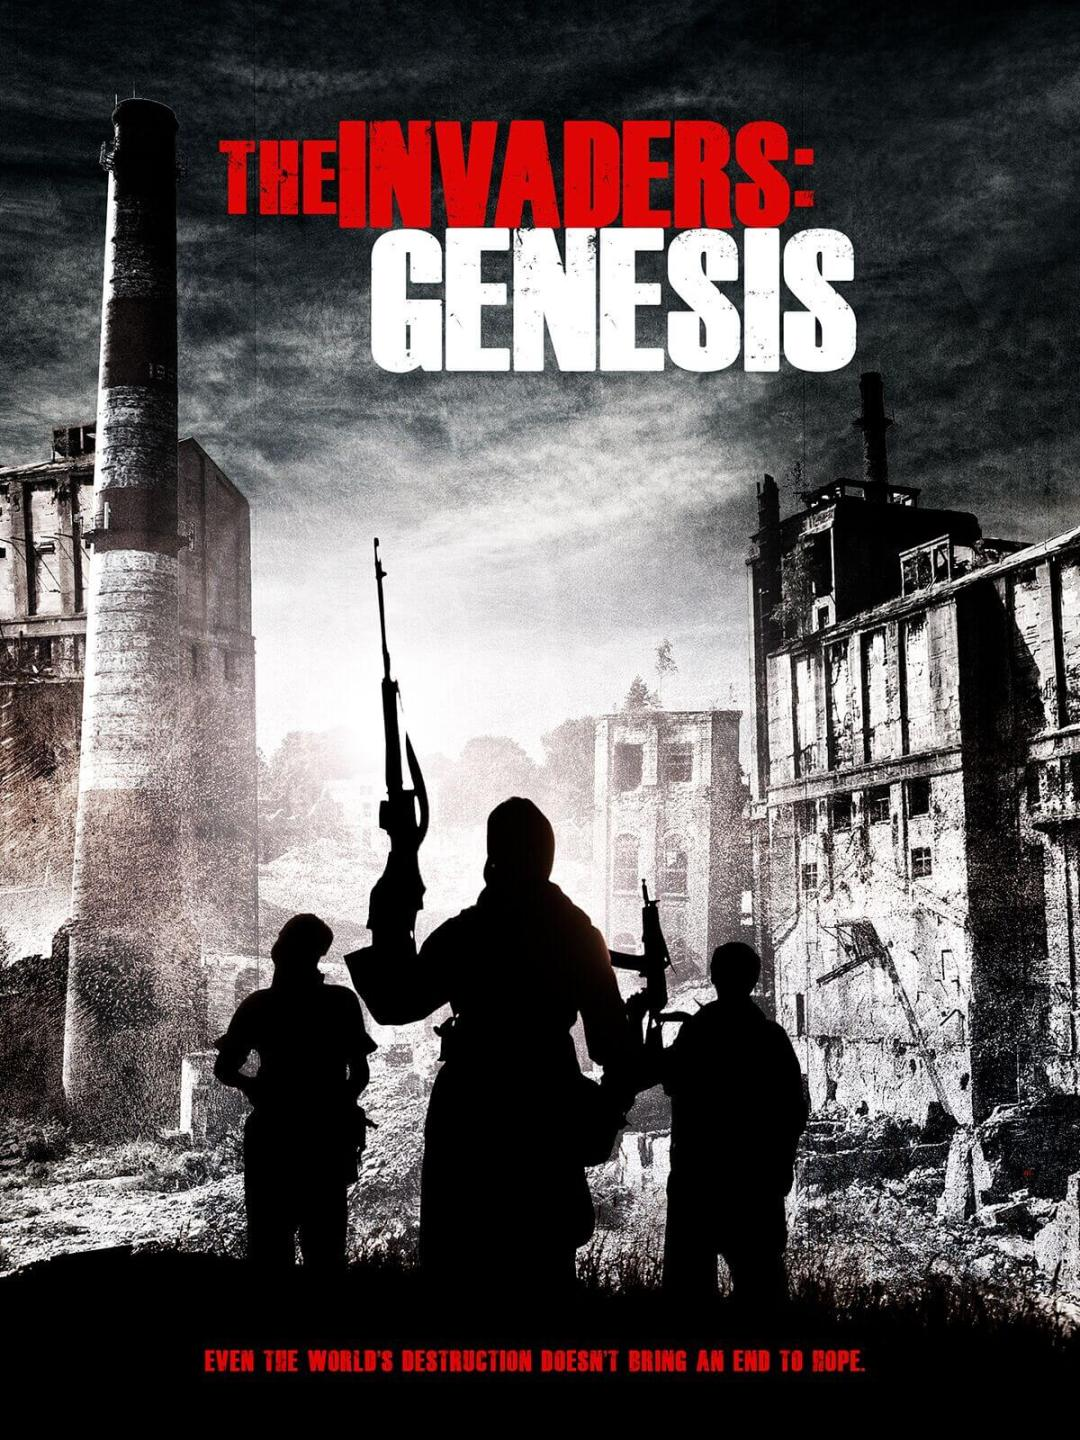 THE INVADERS: GENESIS